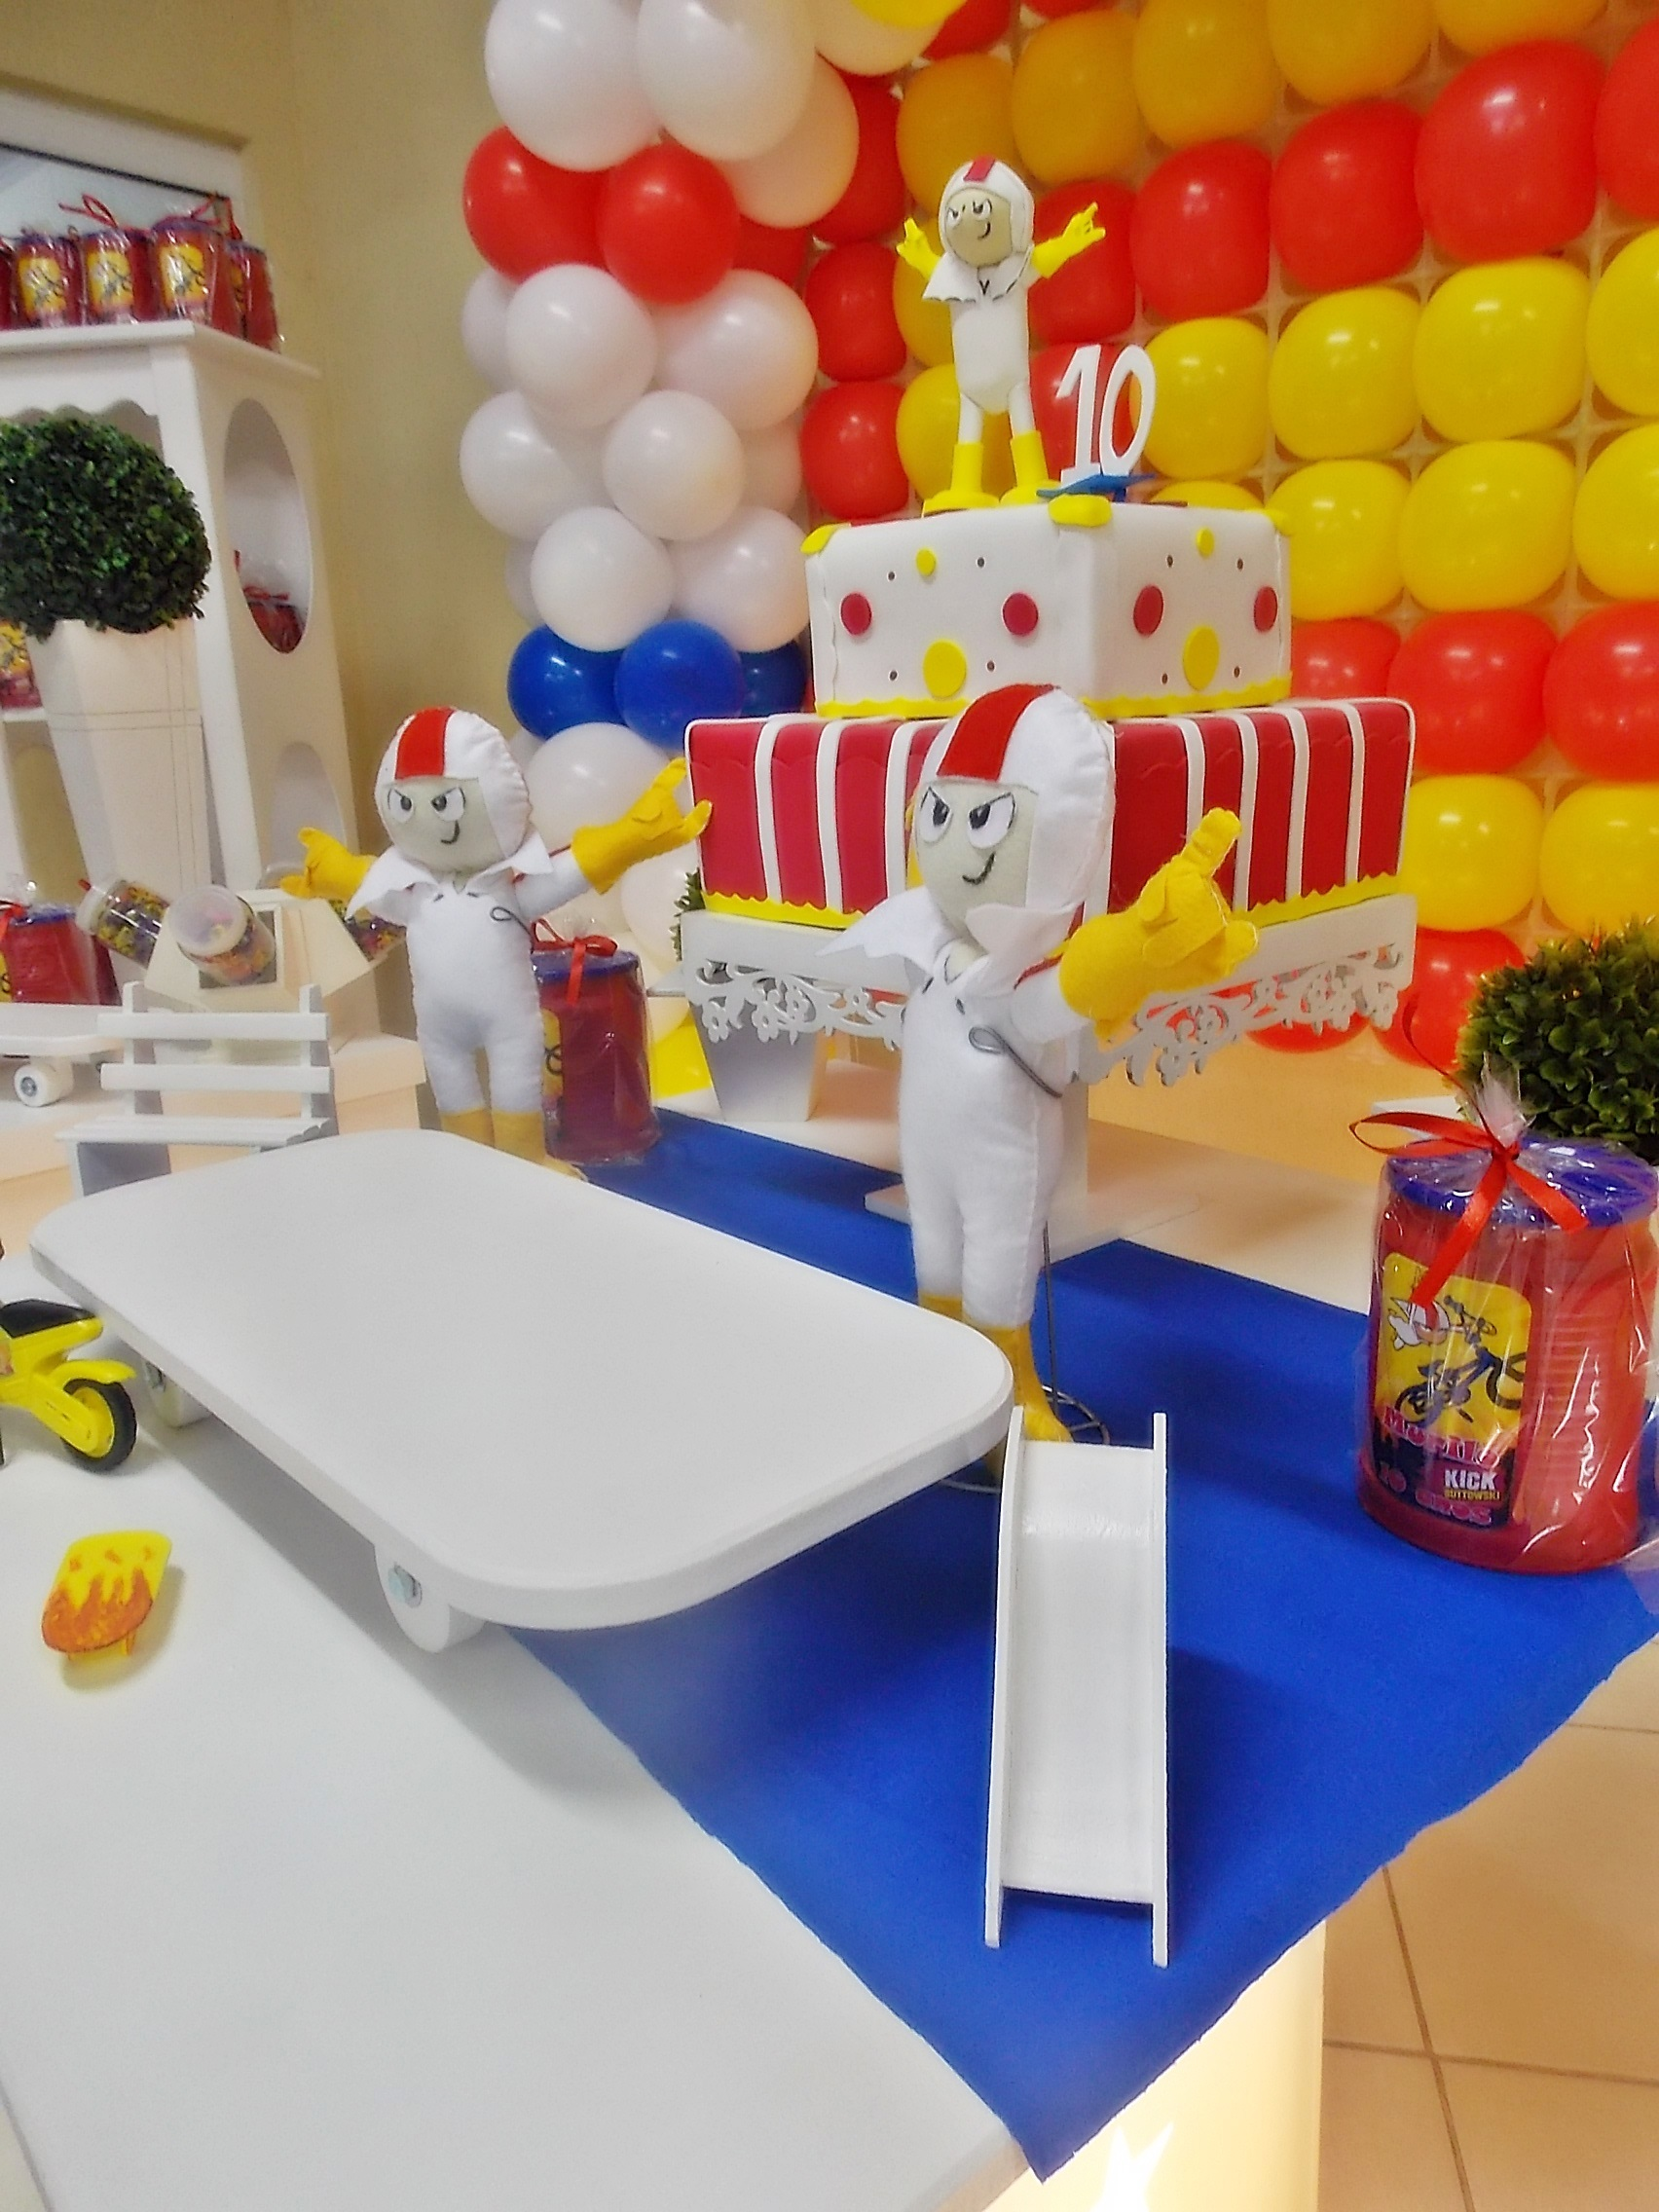 decoracao festa infantil kick buttowski:decoracao infantil kick buttowski decoracao infantil kick buttowski